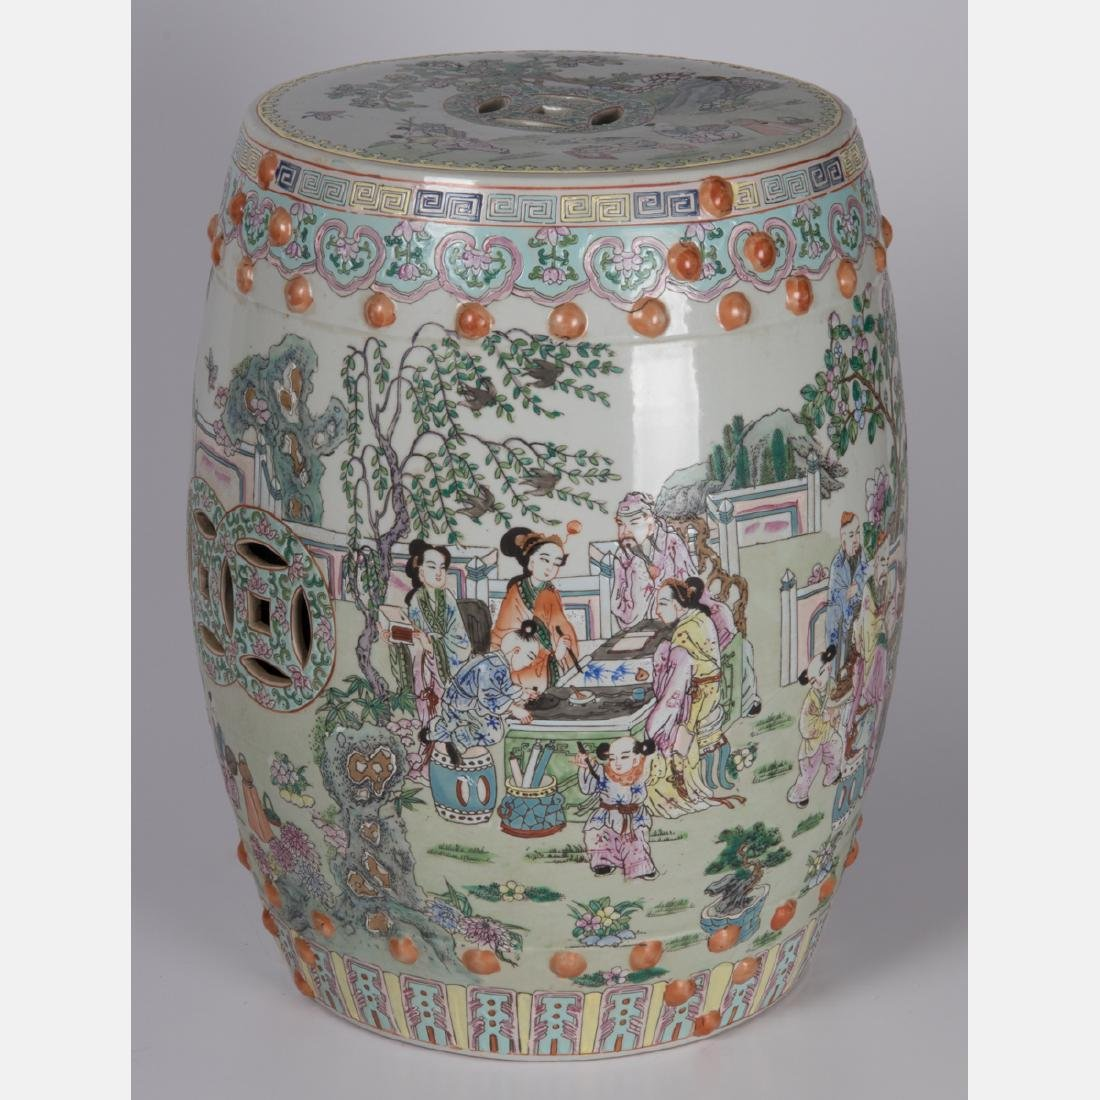 A Chinese Porcelain Garden Seat, 20th Century.